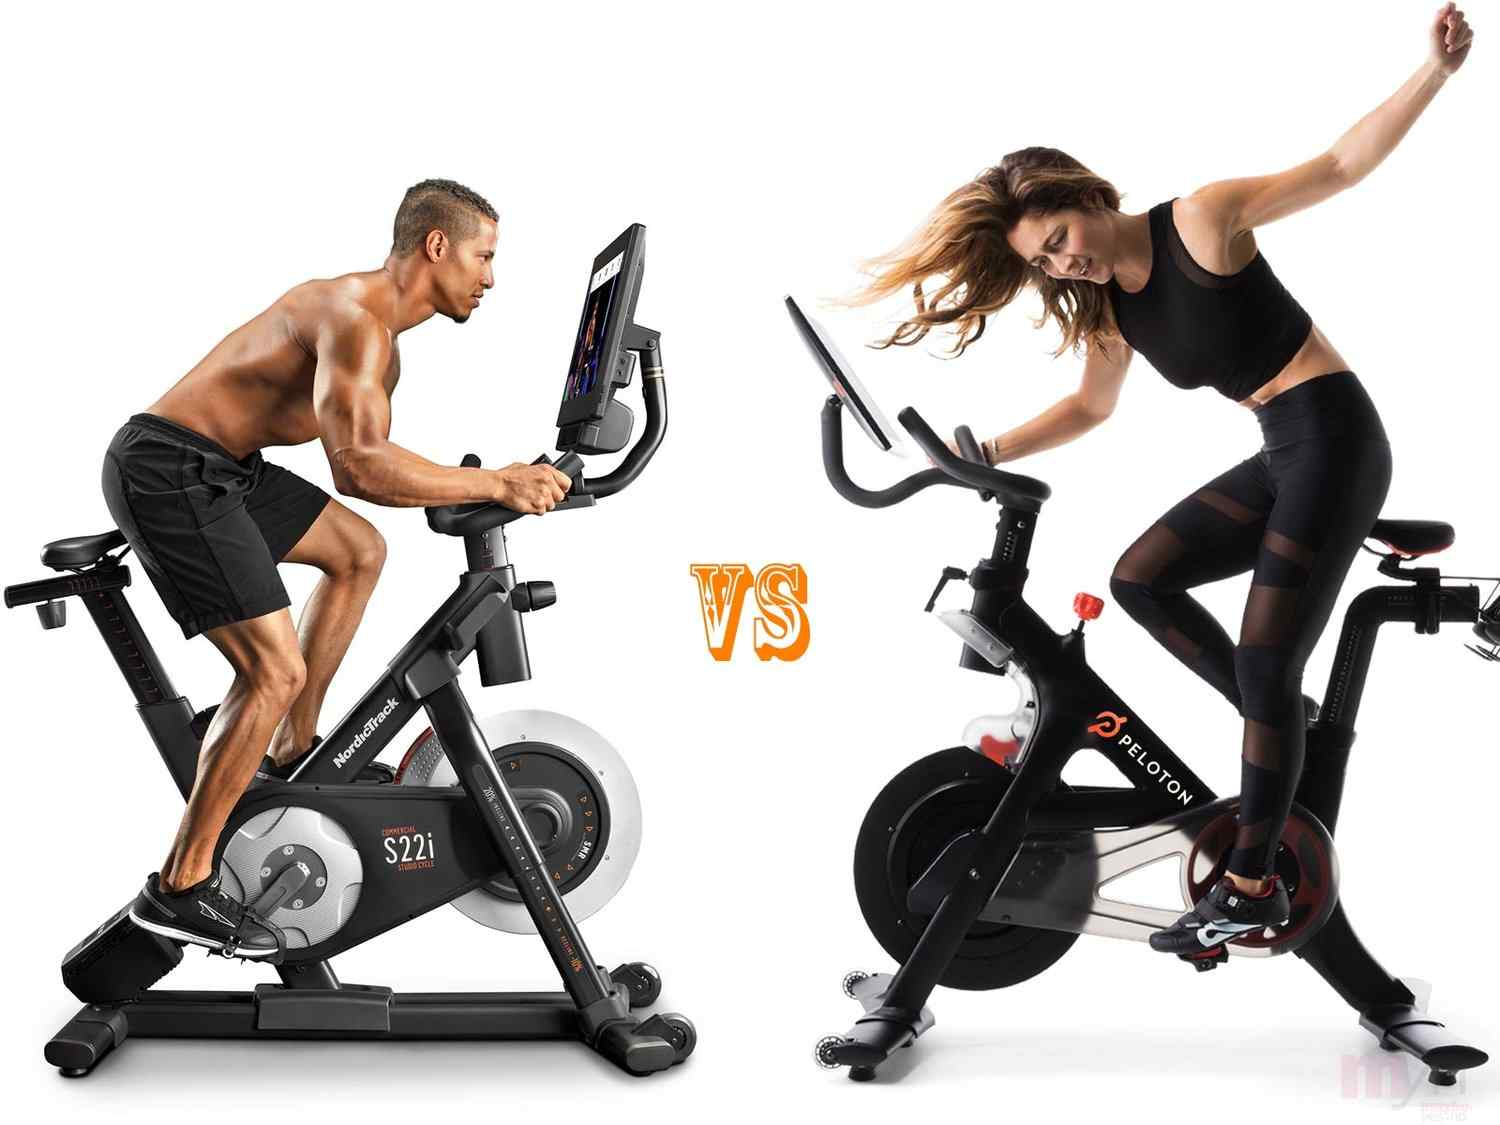 Peloton vs NordicTrack S22i Bike